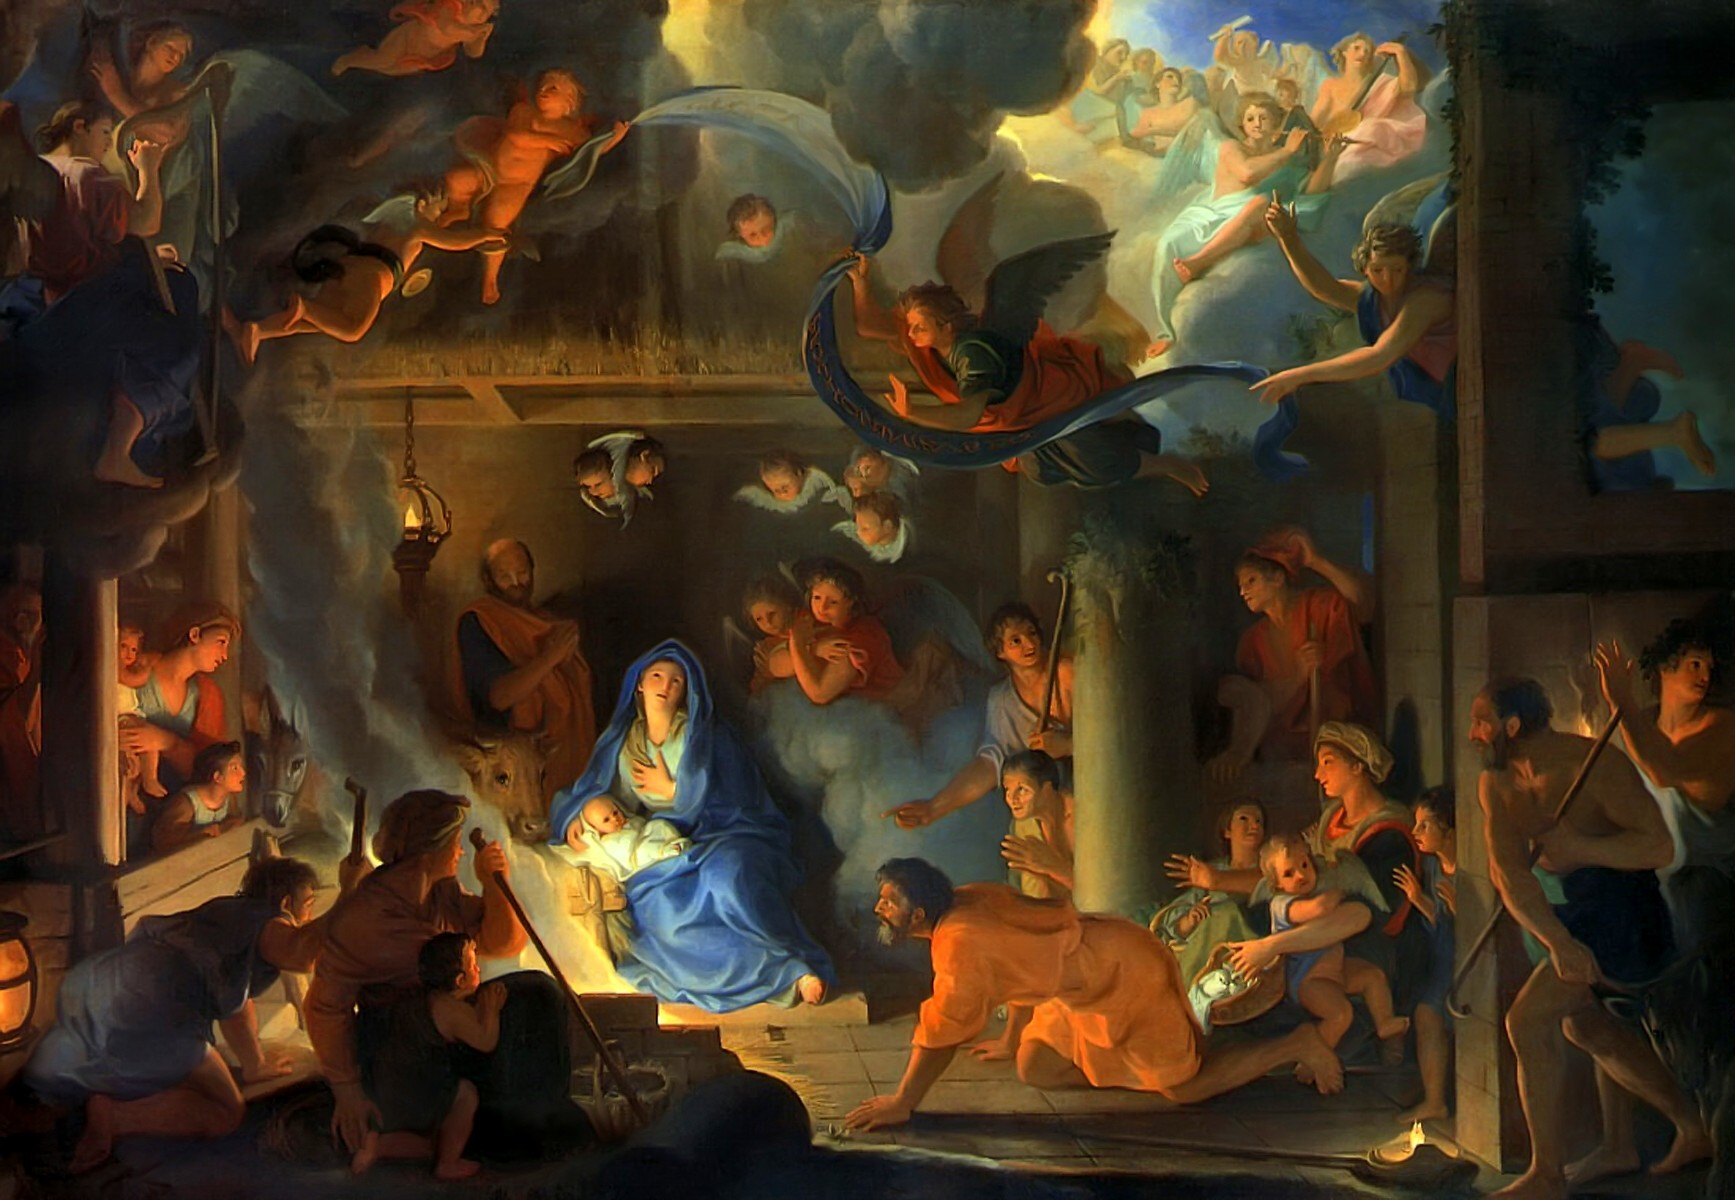 Was Jesus Born In A Stable, Cave, Or Home?